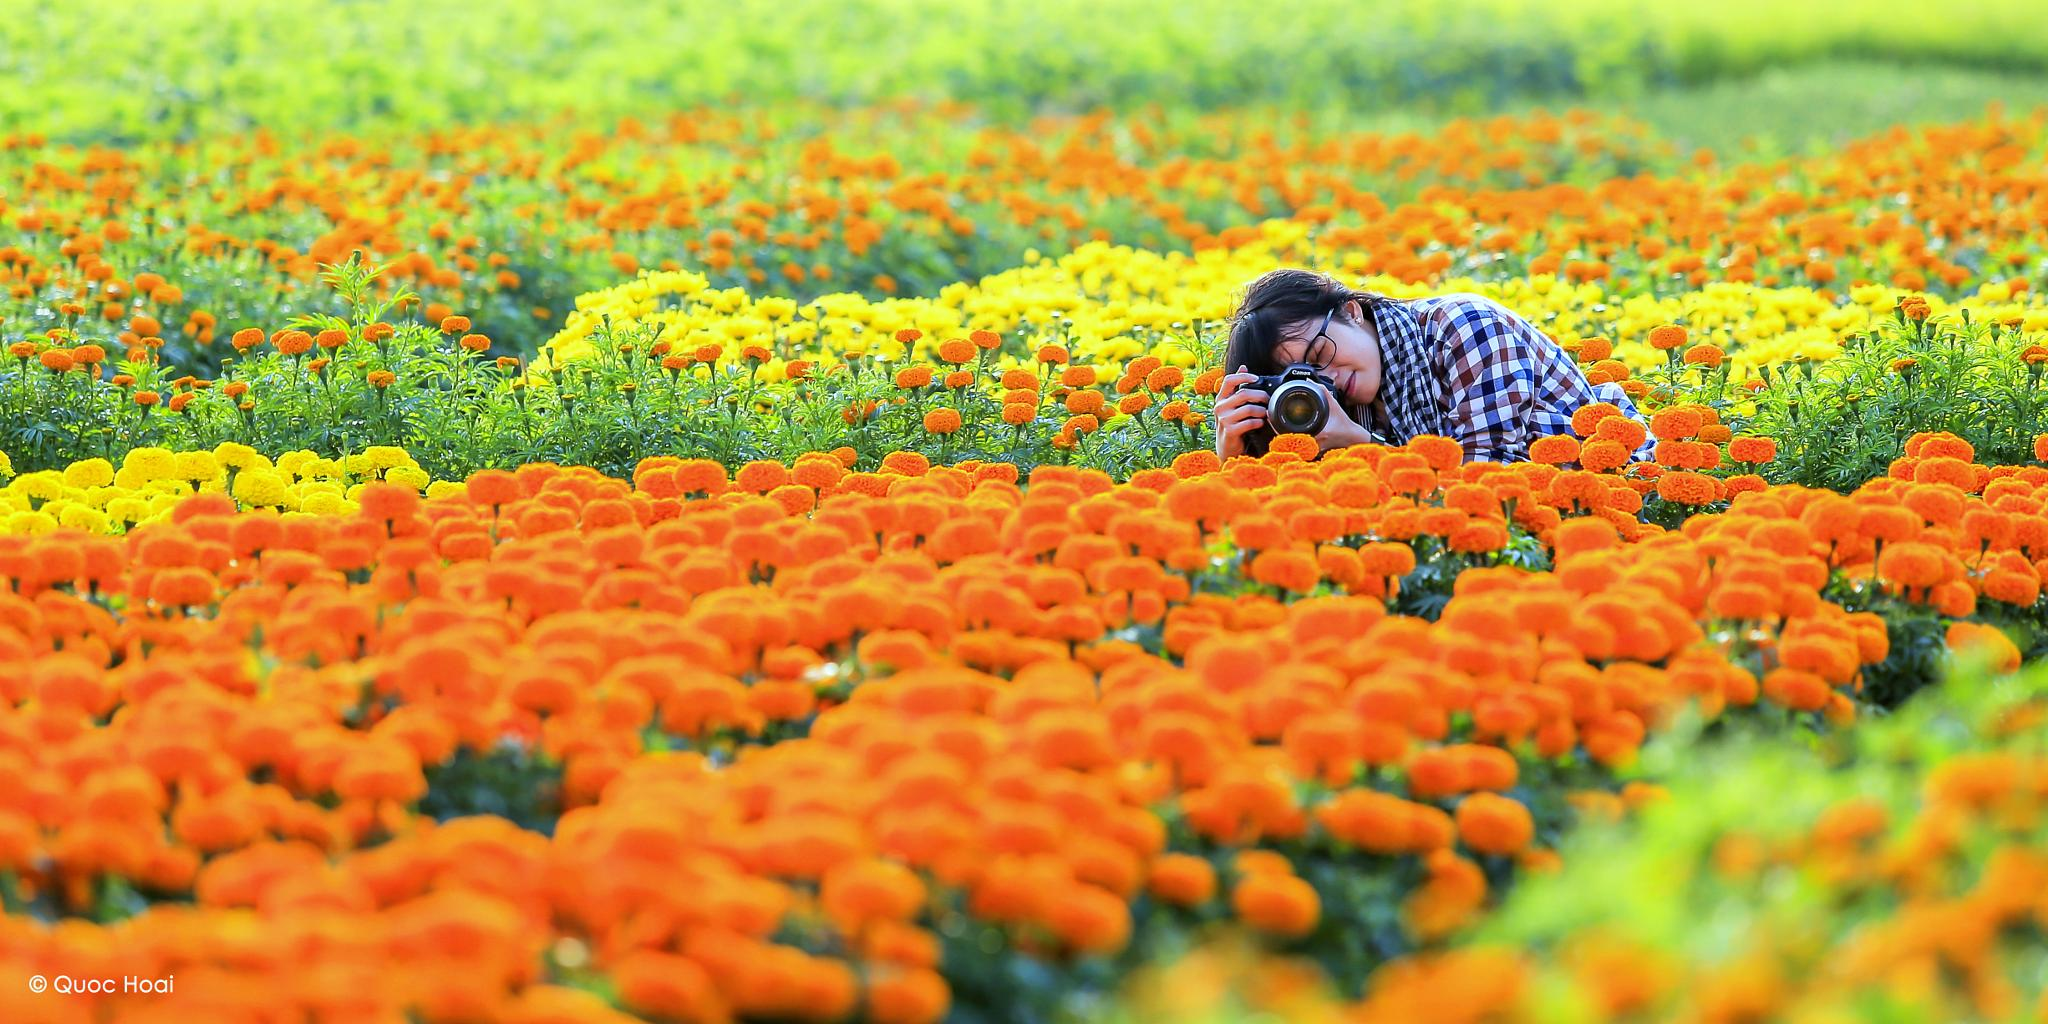 The flowers  by Michael Hoai